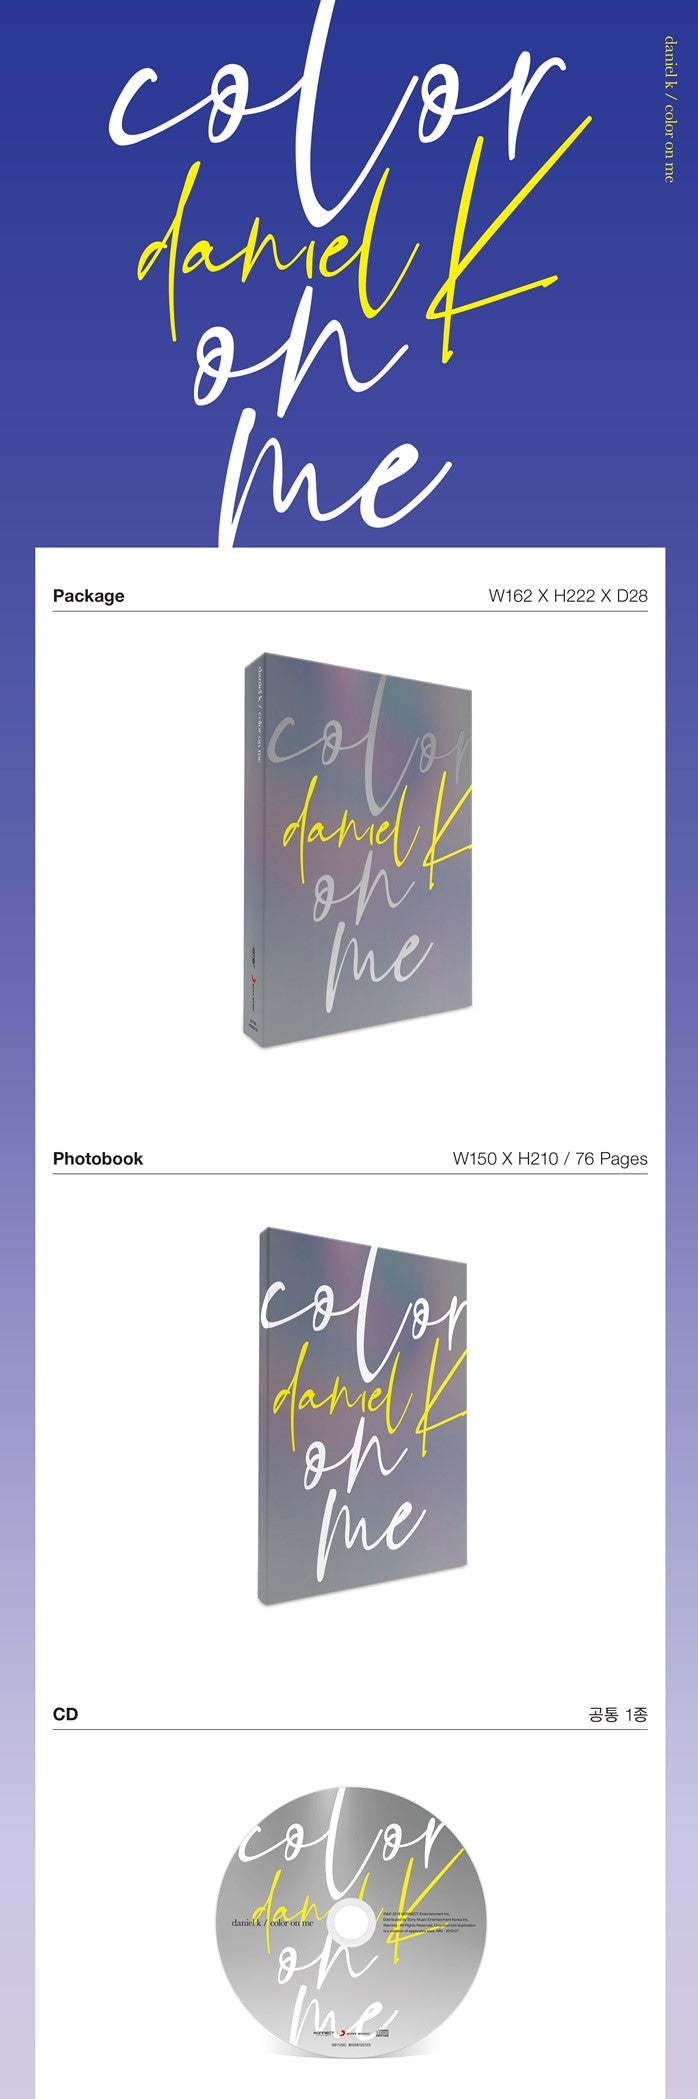 Daniel Kang - Color on me (1st Mini Album) - J-Store Online